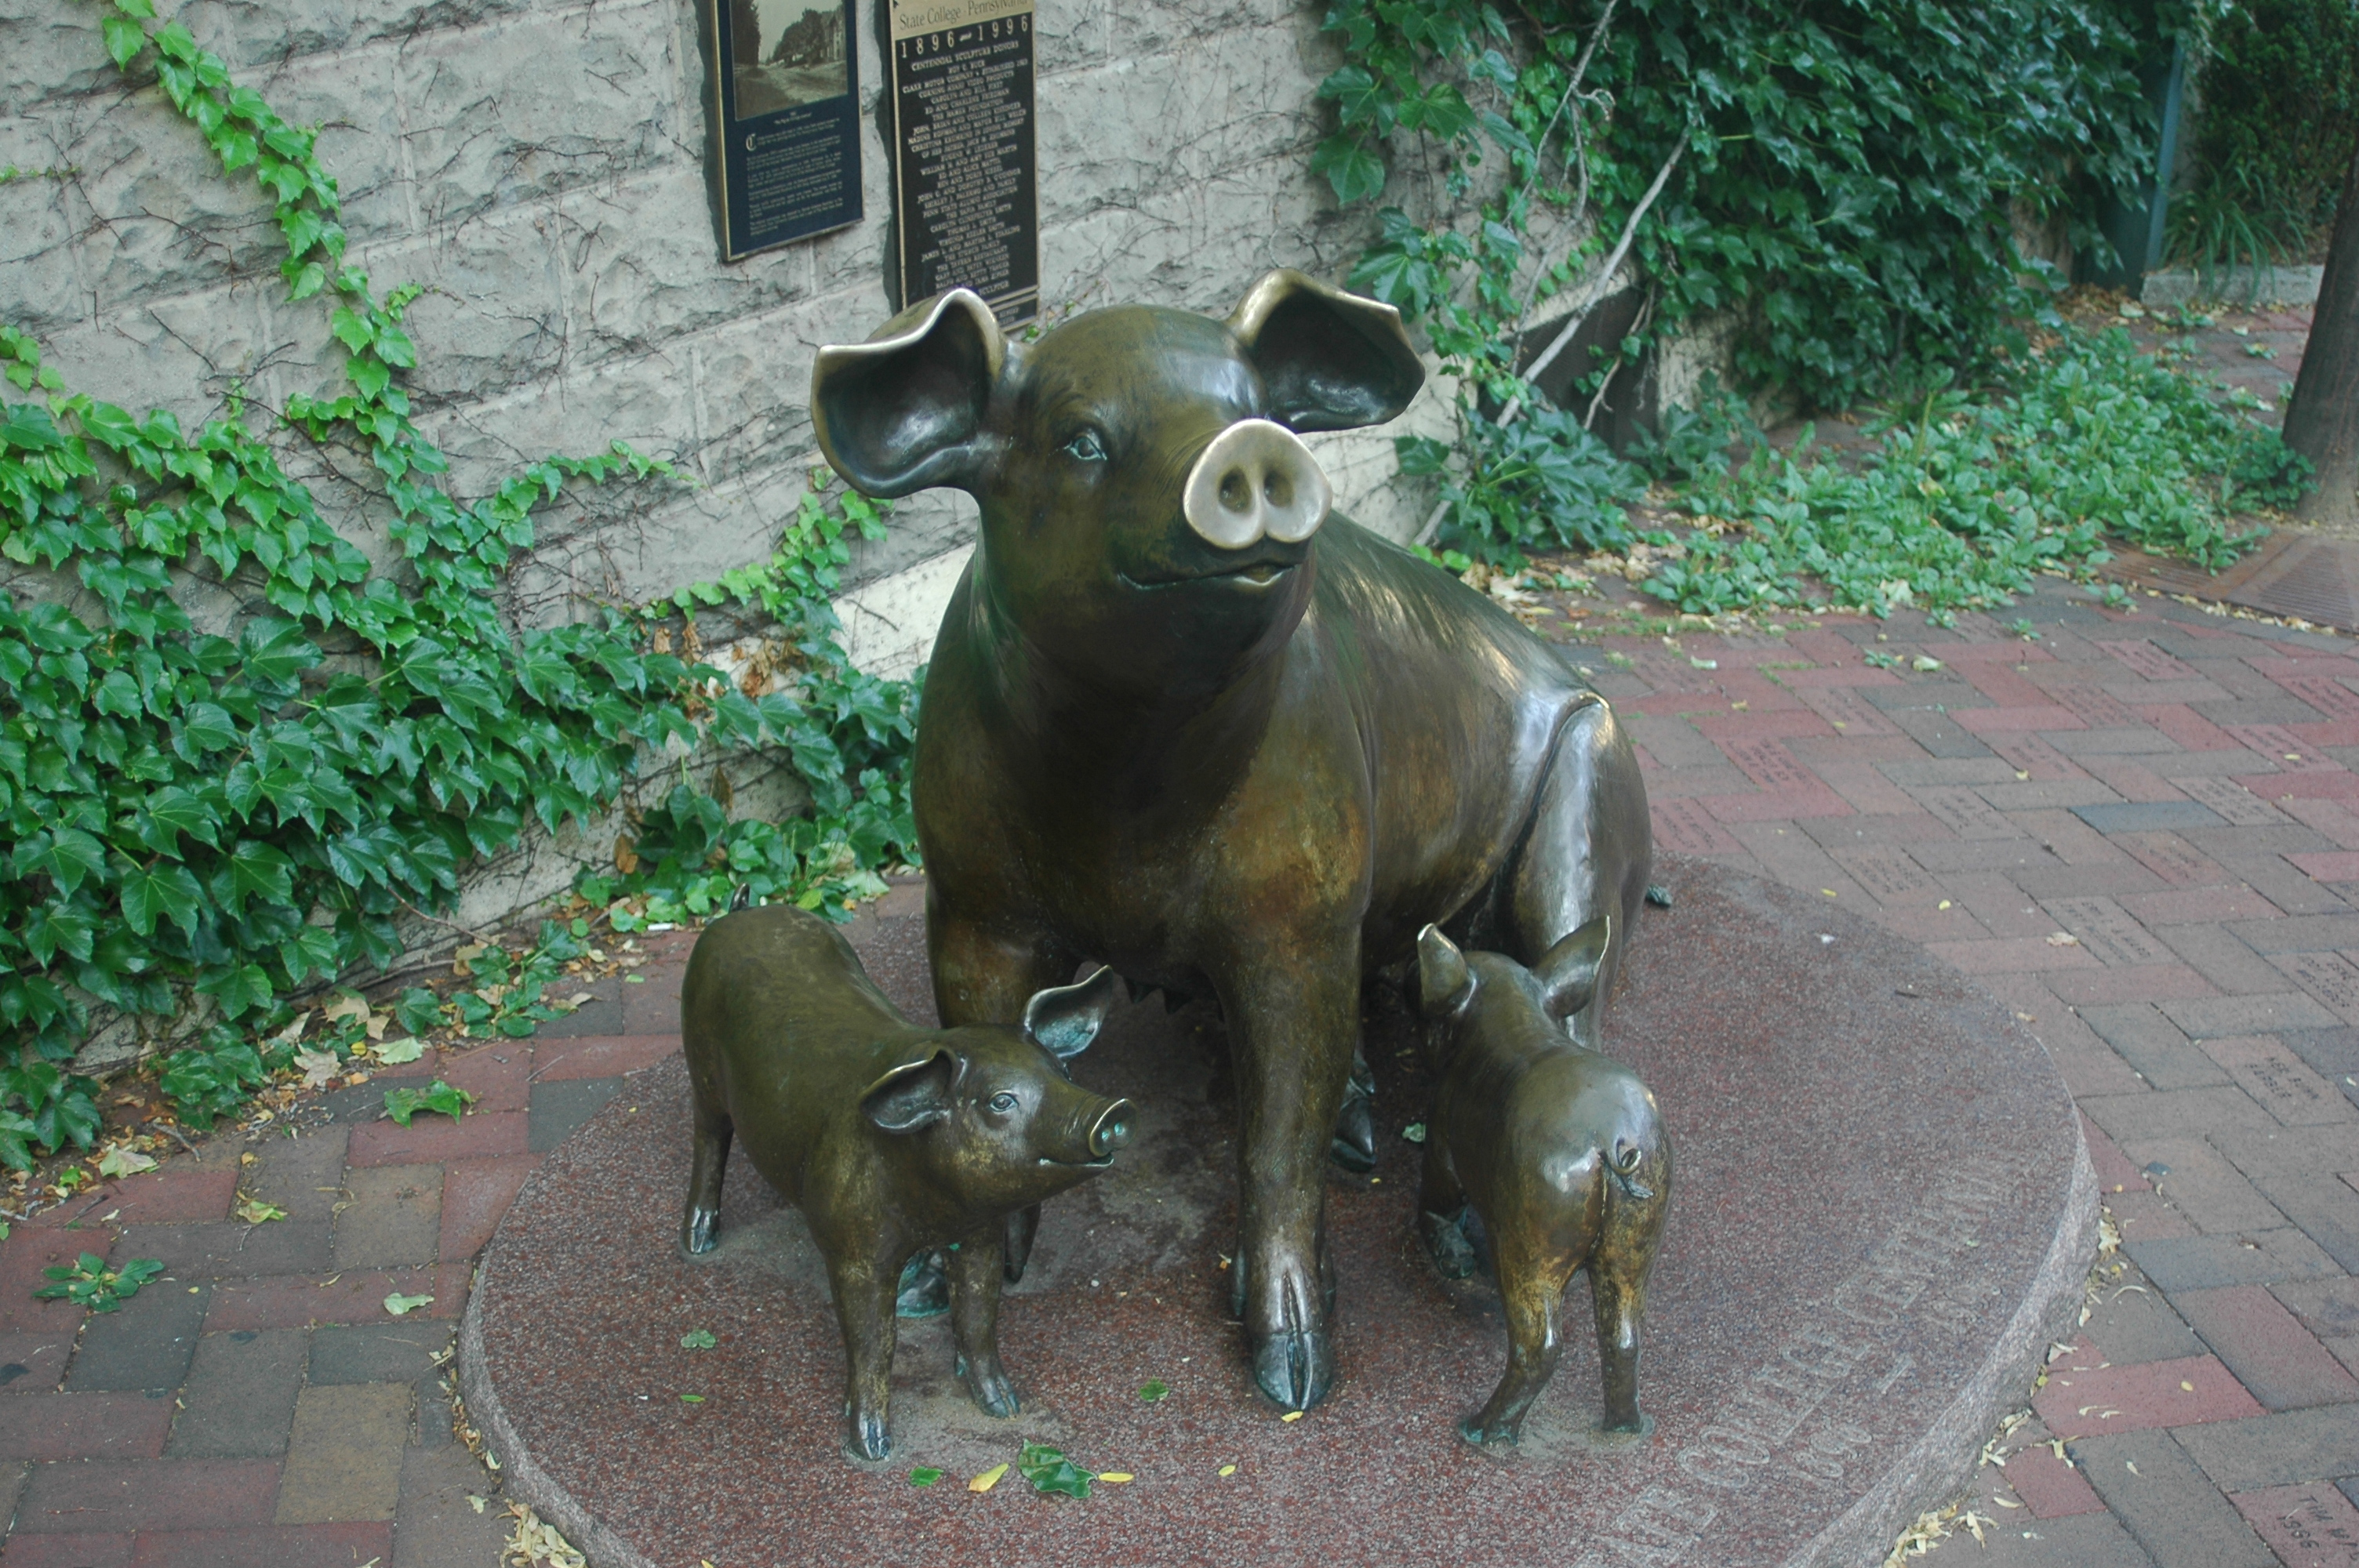 Centennial pigs in State College, Pennsylvania